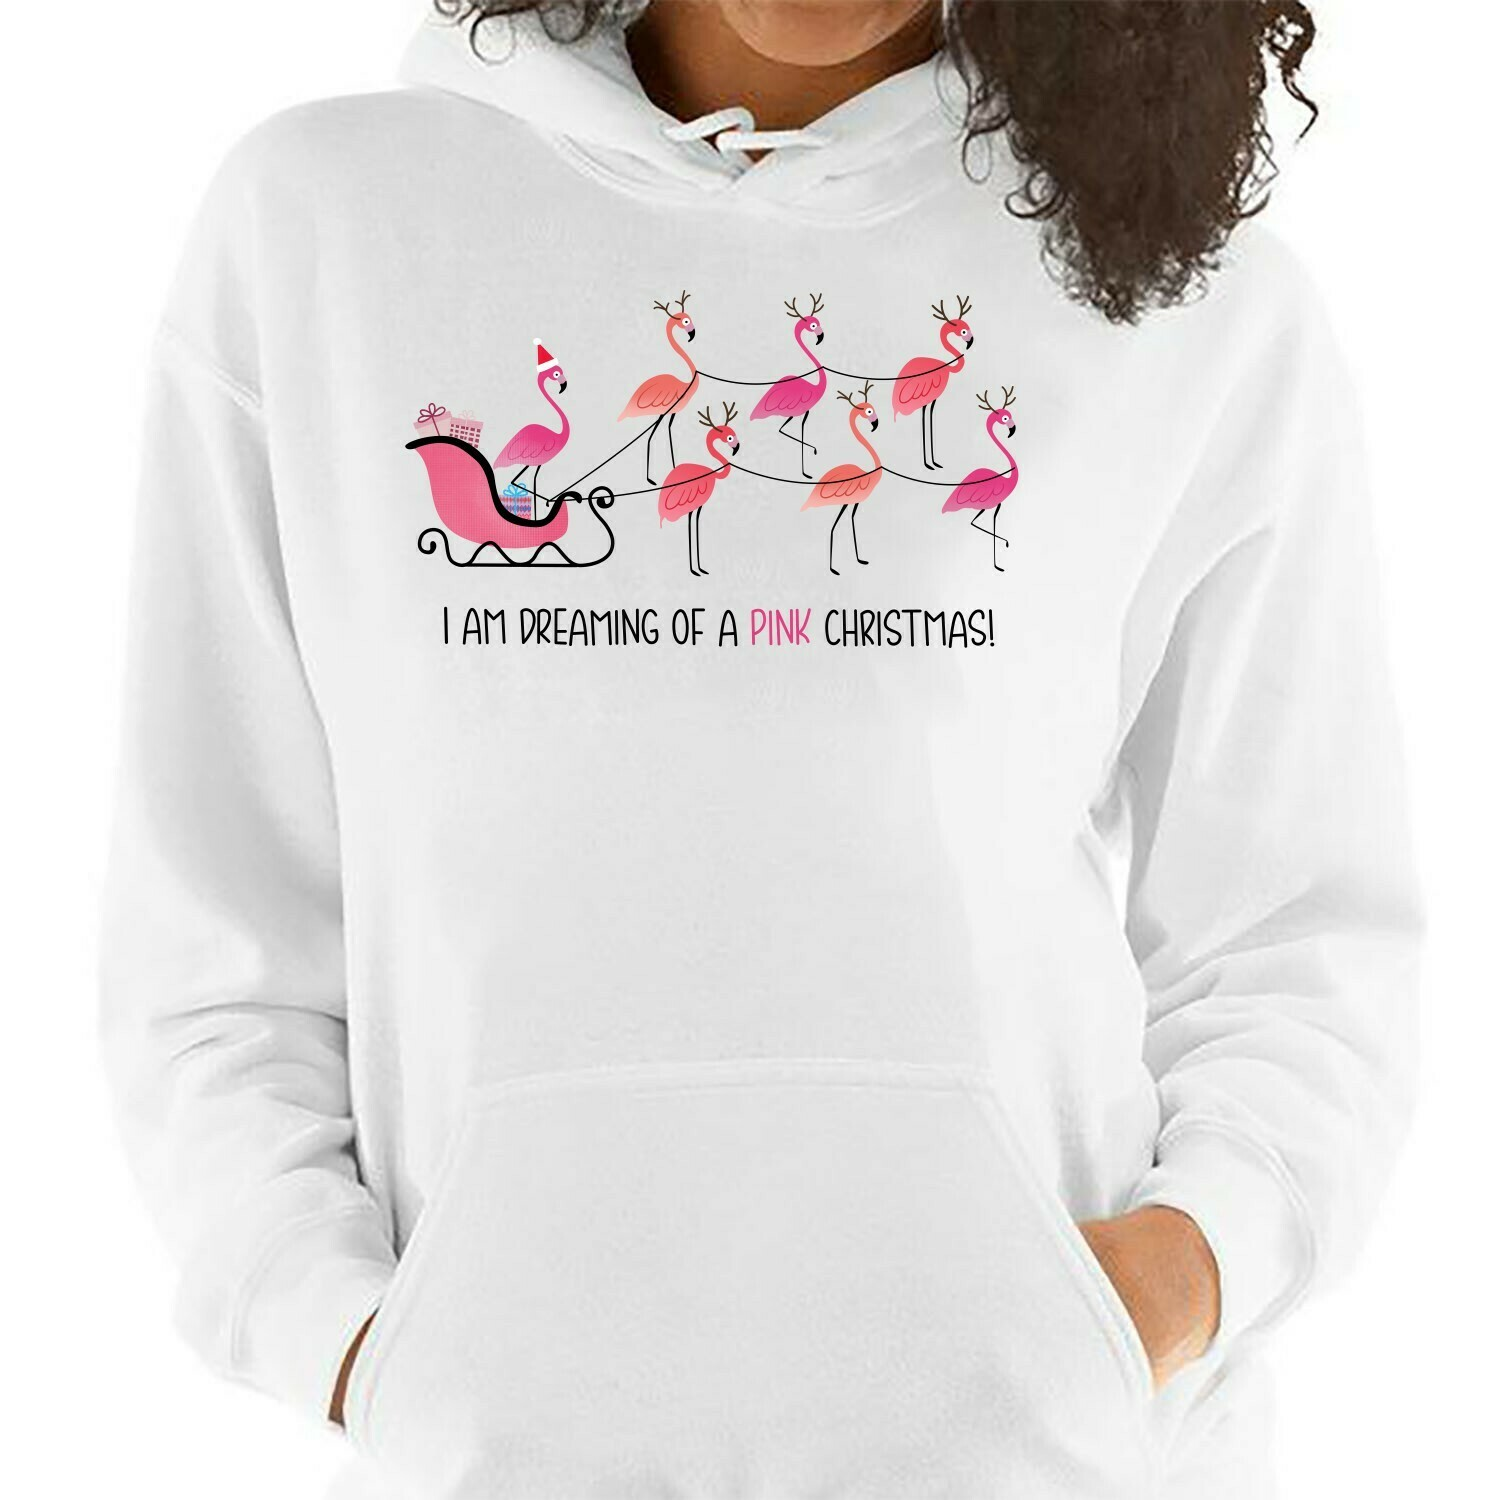 I Am Dreaming Of A Pink Christmas Gifts For Lovers Christmas Noel Family Vacation Team Party T-Shirt Long Sleeve Sweatshirt Hoodie Jolly Family Gifts